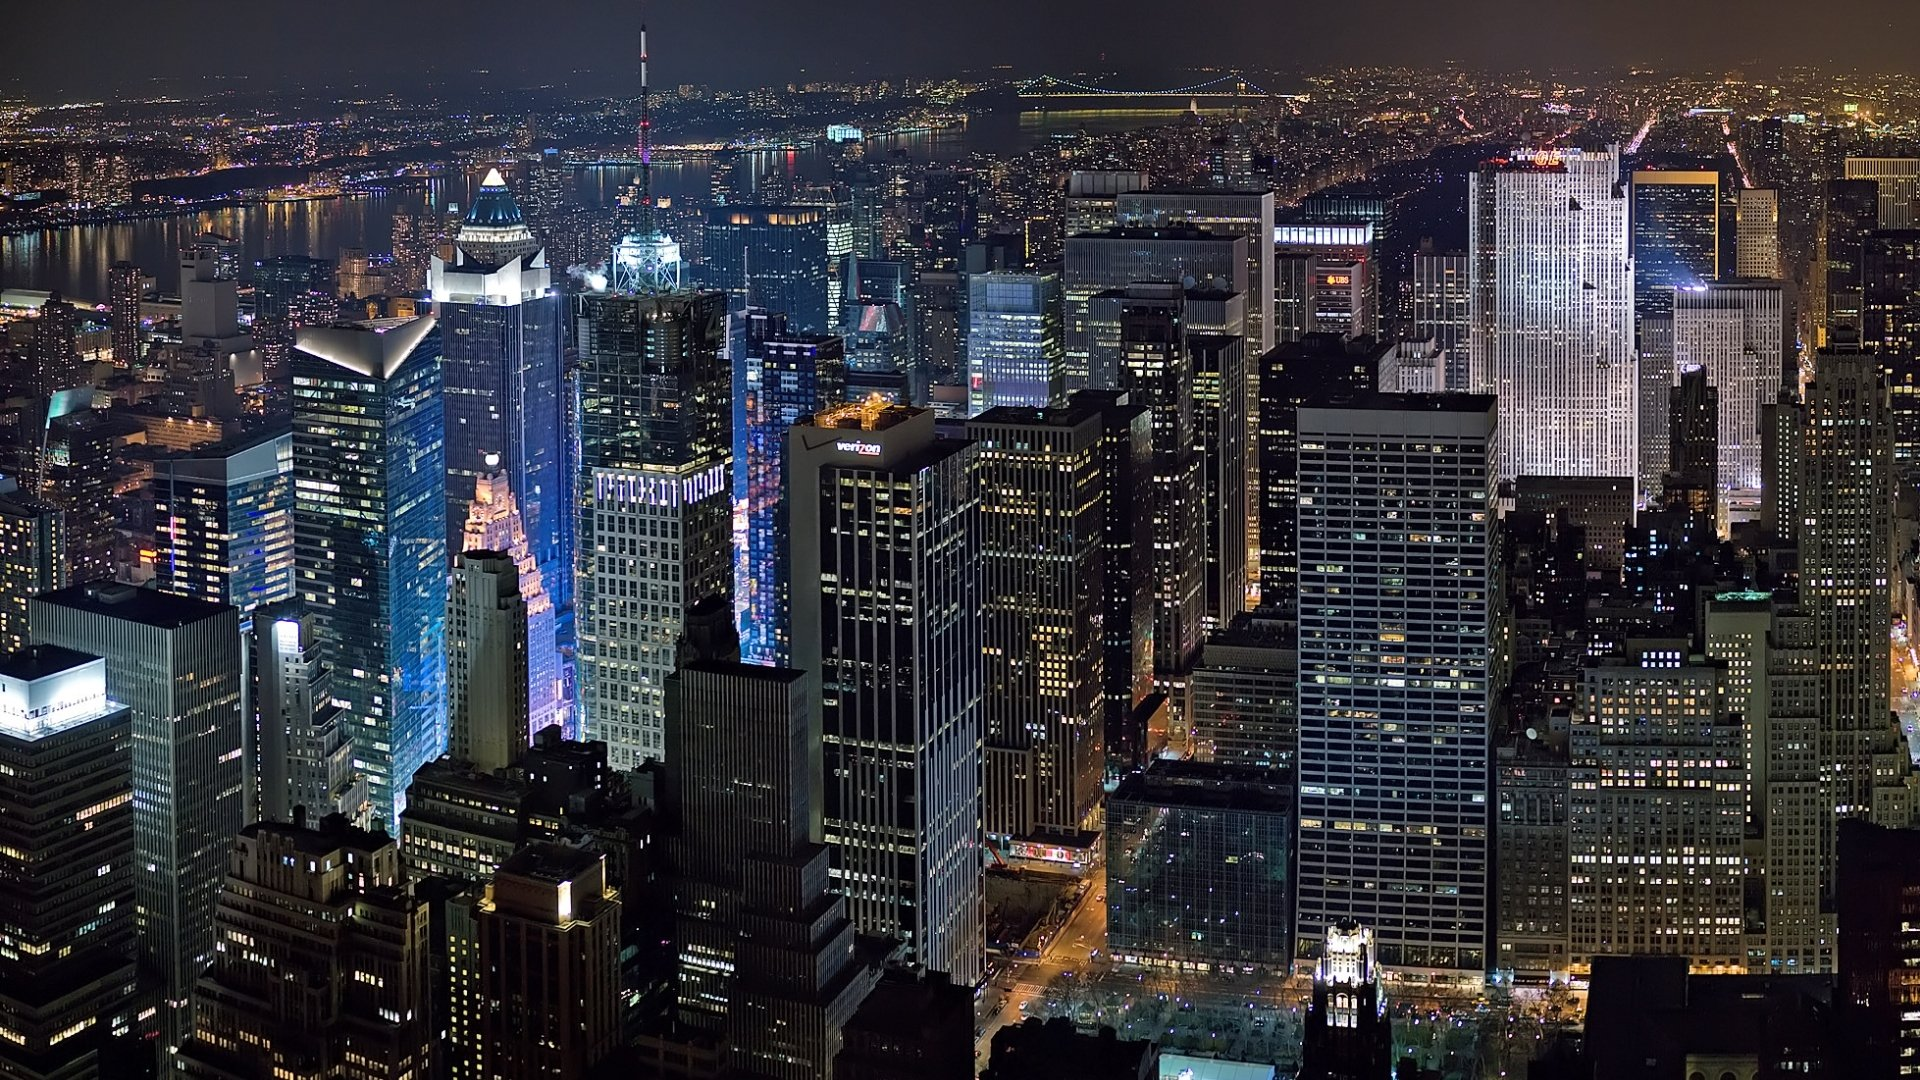 Free Download New York City At Night Wallpaper 3682 1920x1080